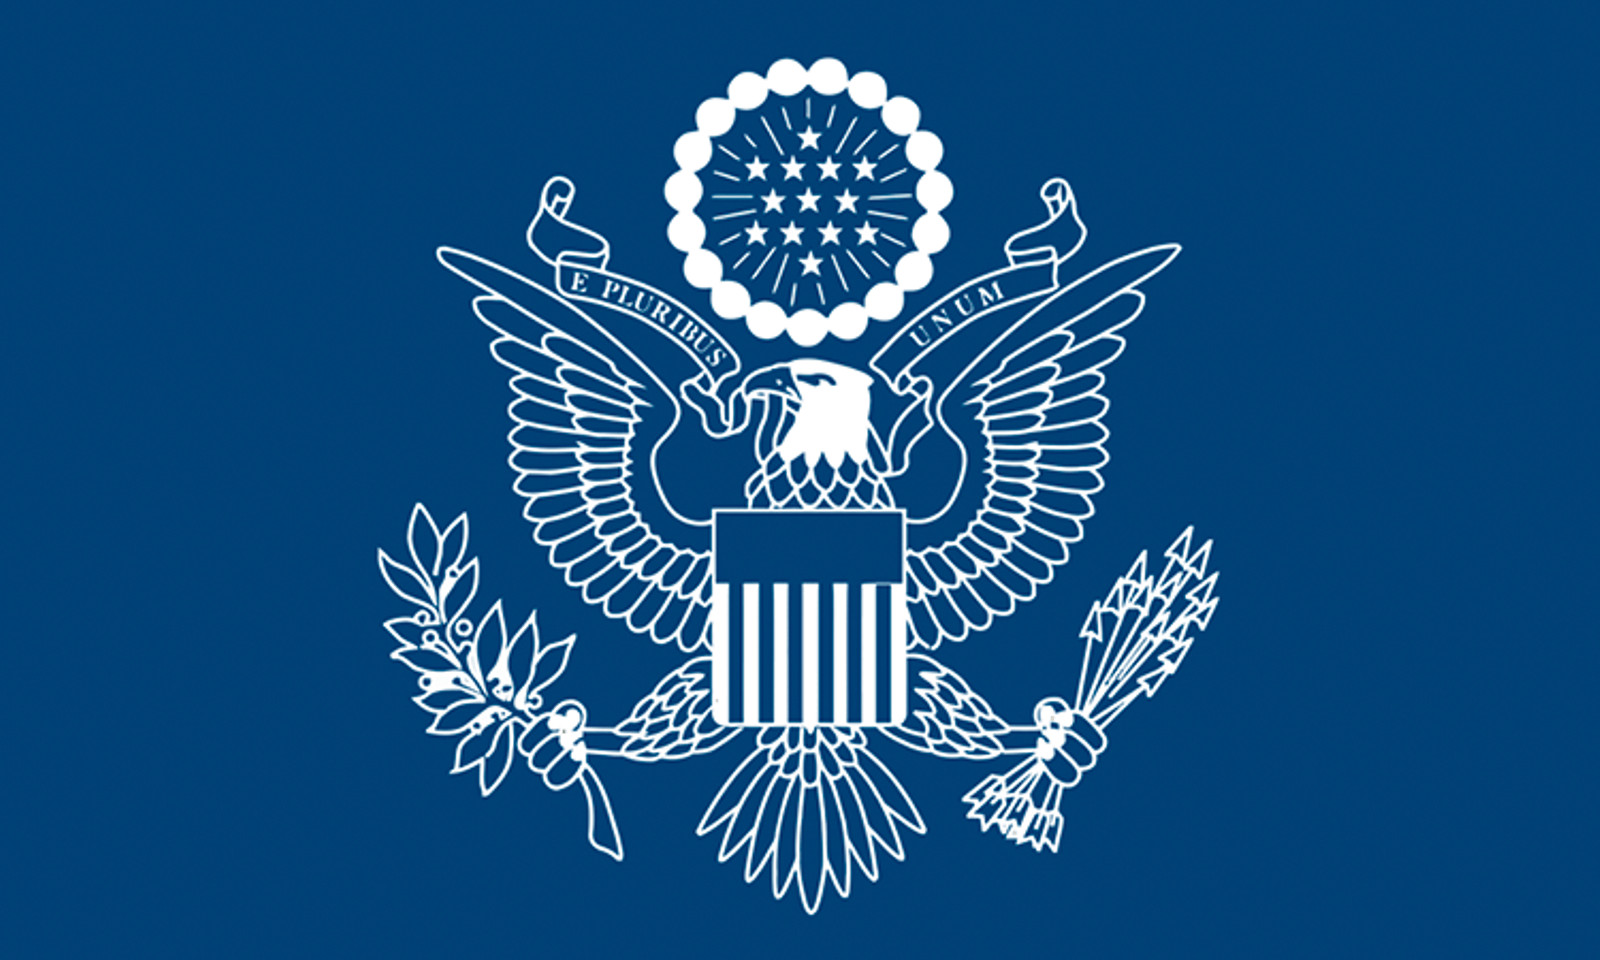 The Great Seal of the United States.